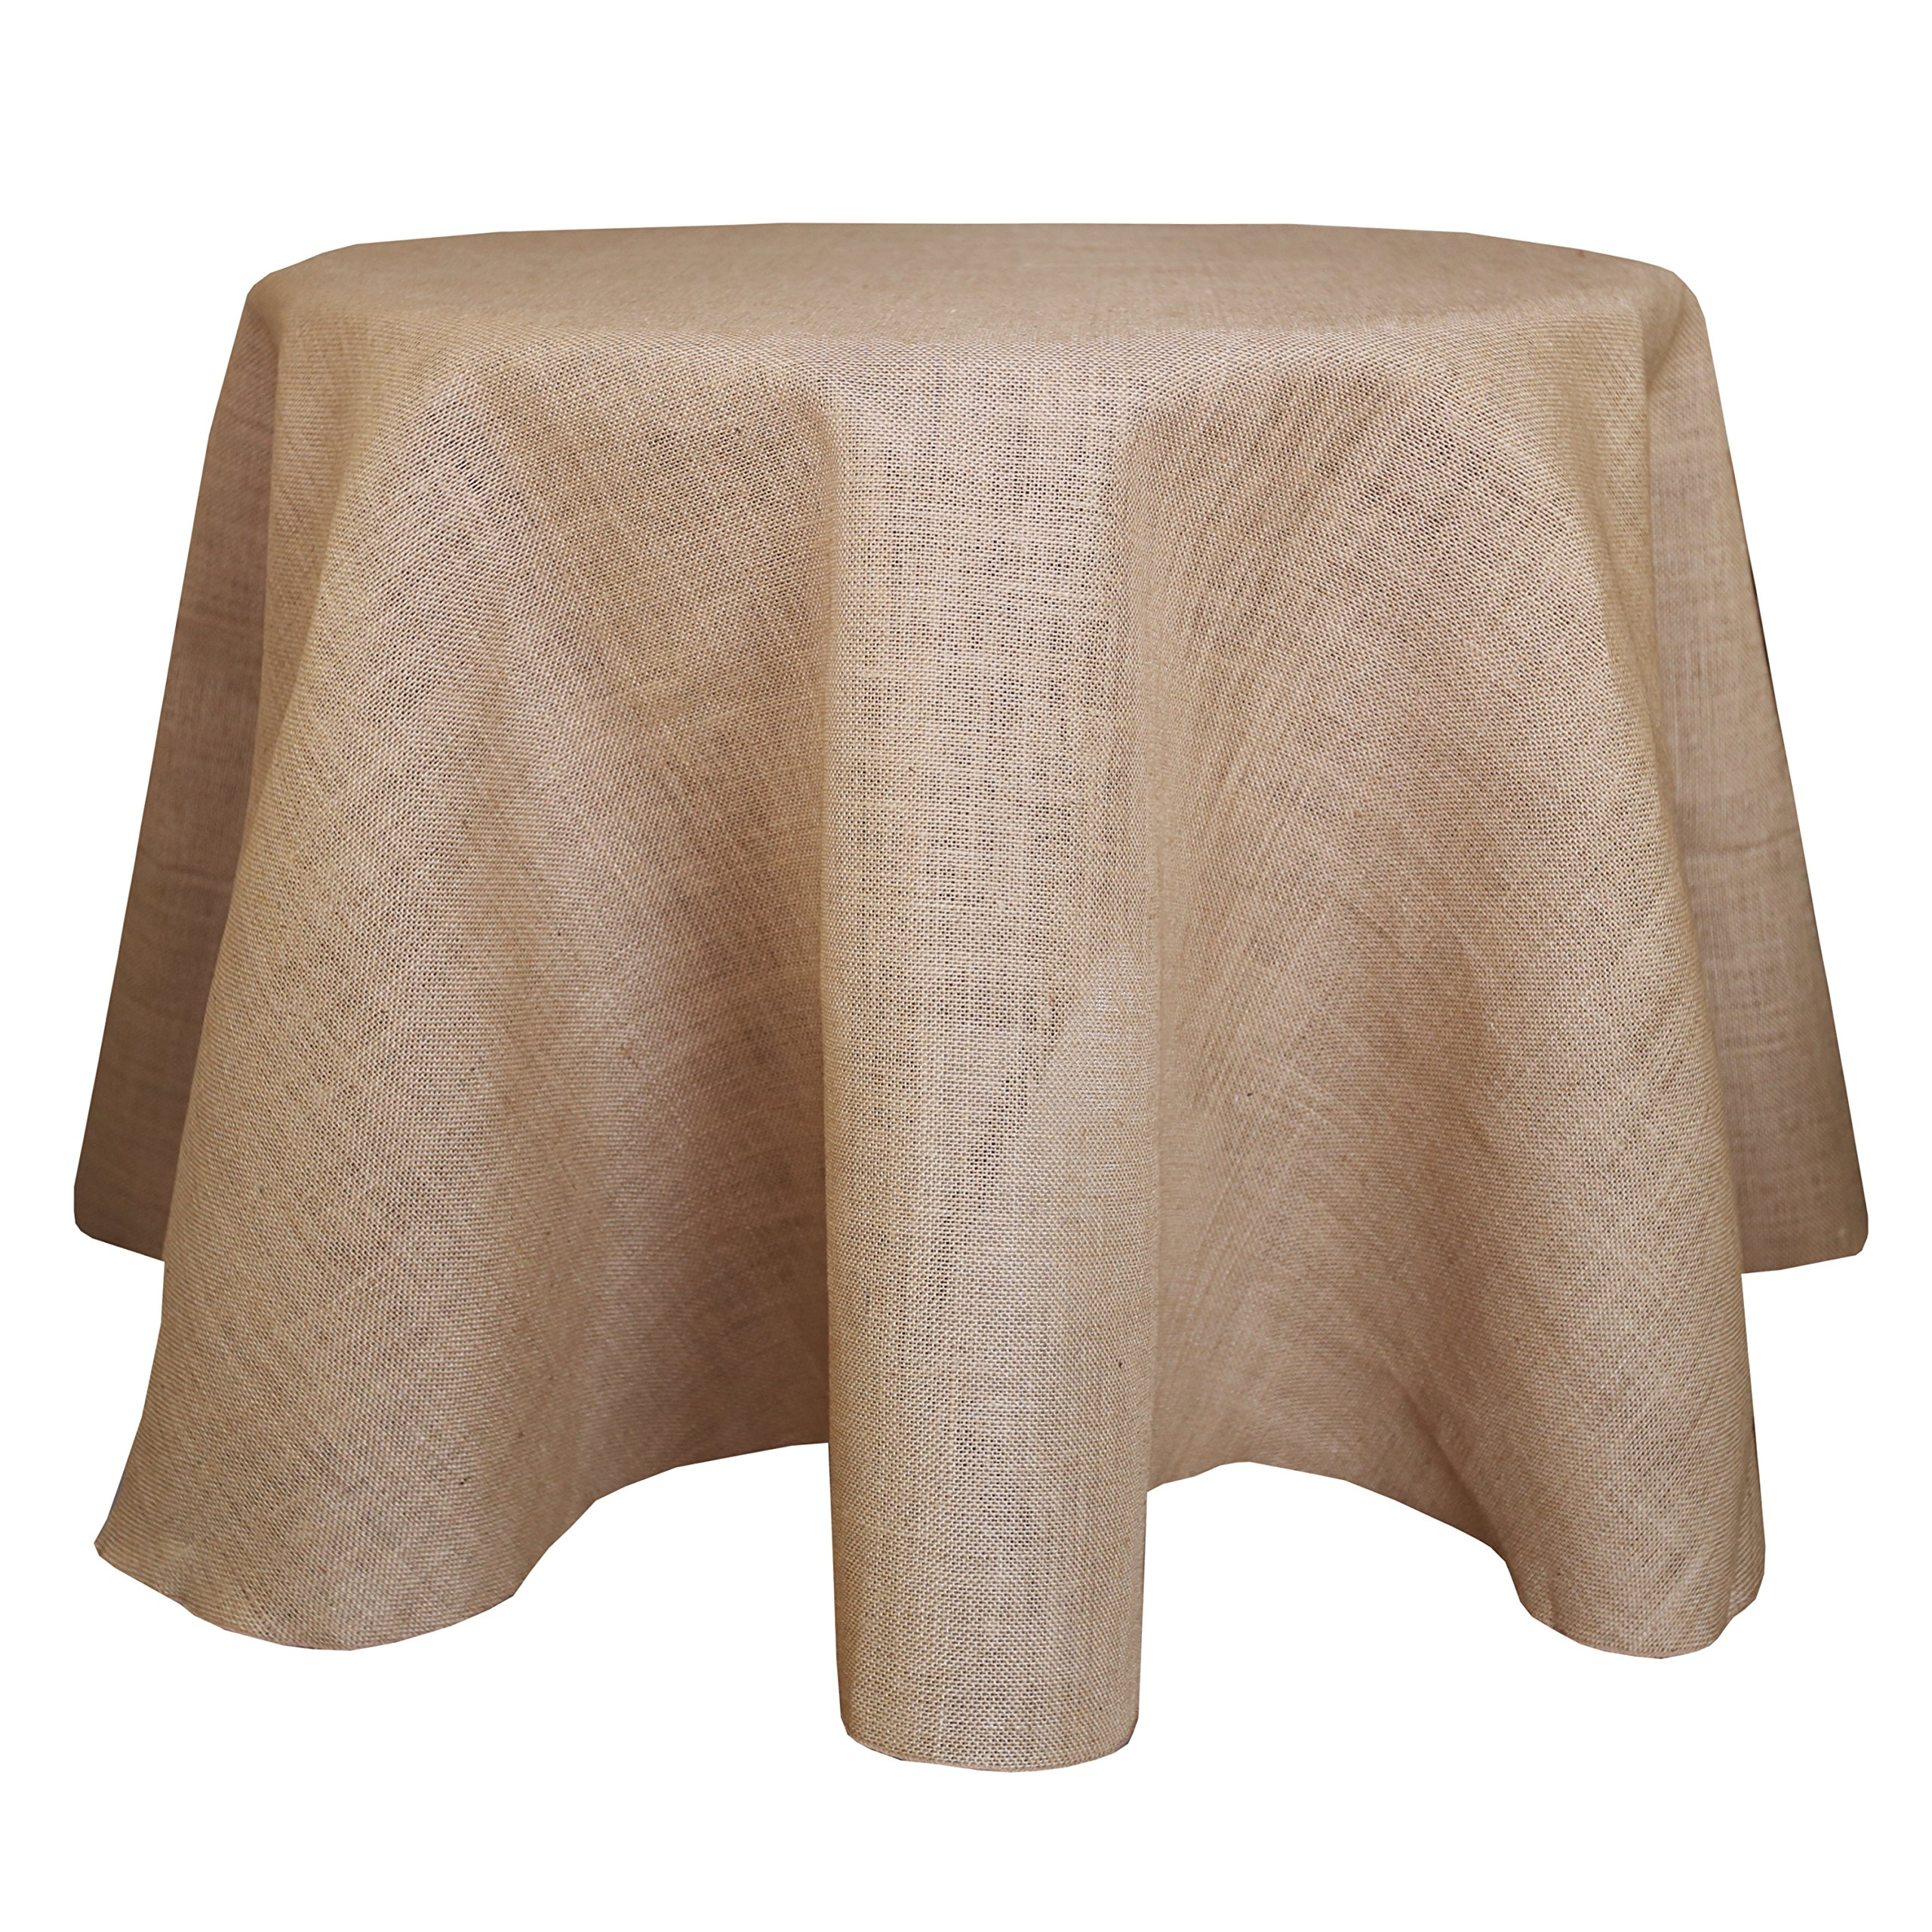 Ultimate Textile (3 Pack) Burlap 114-Inch Round Jute Tablecloth Natural